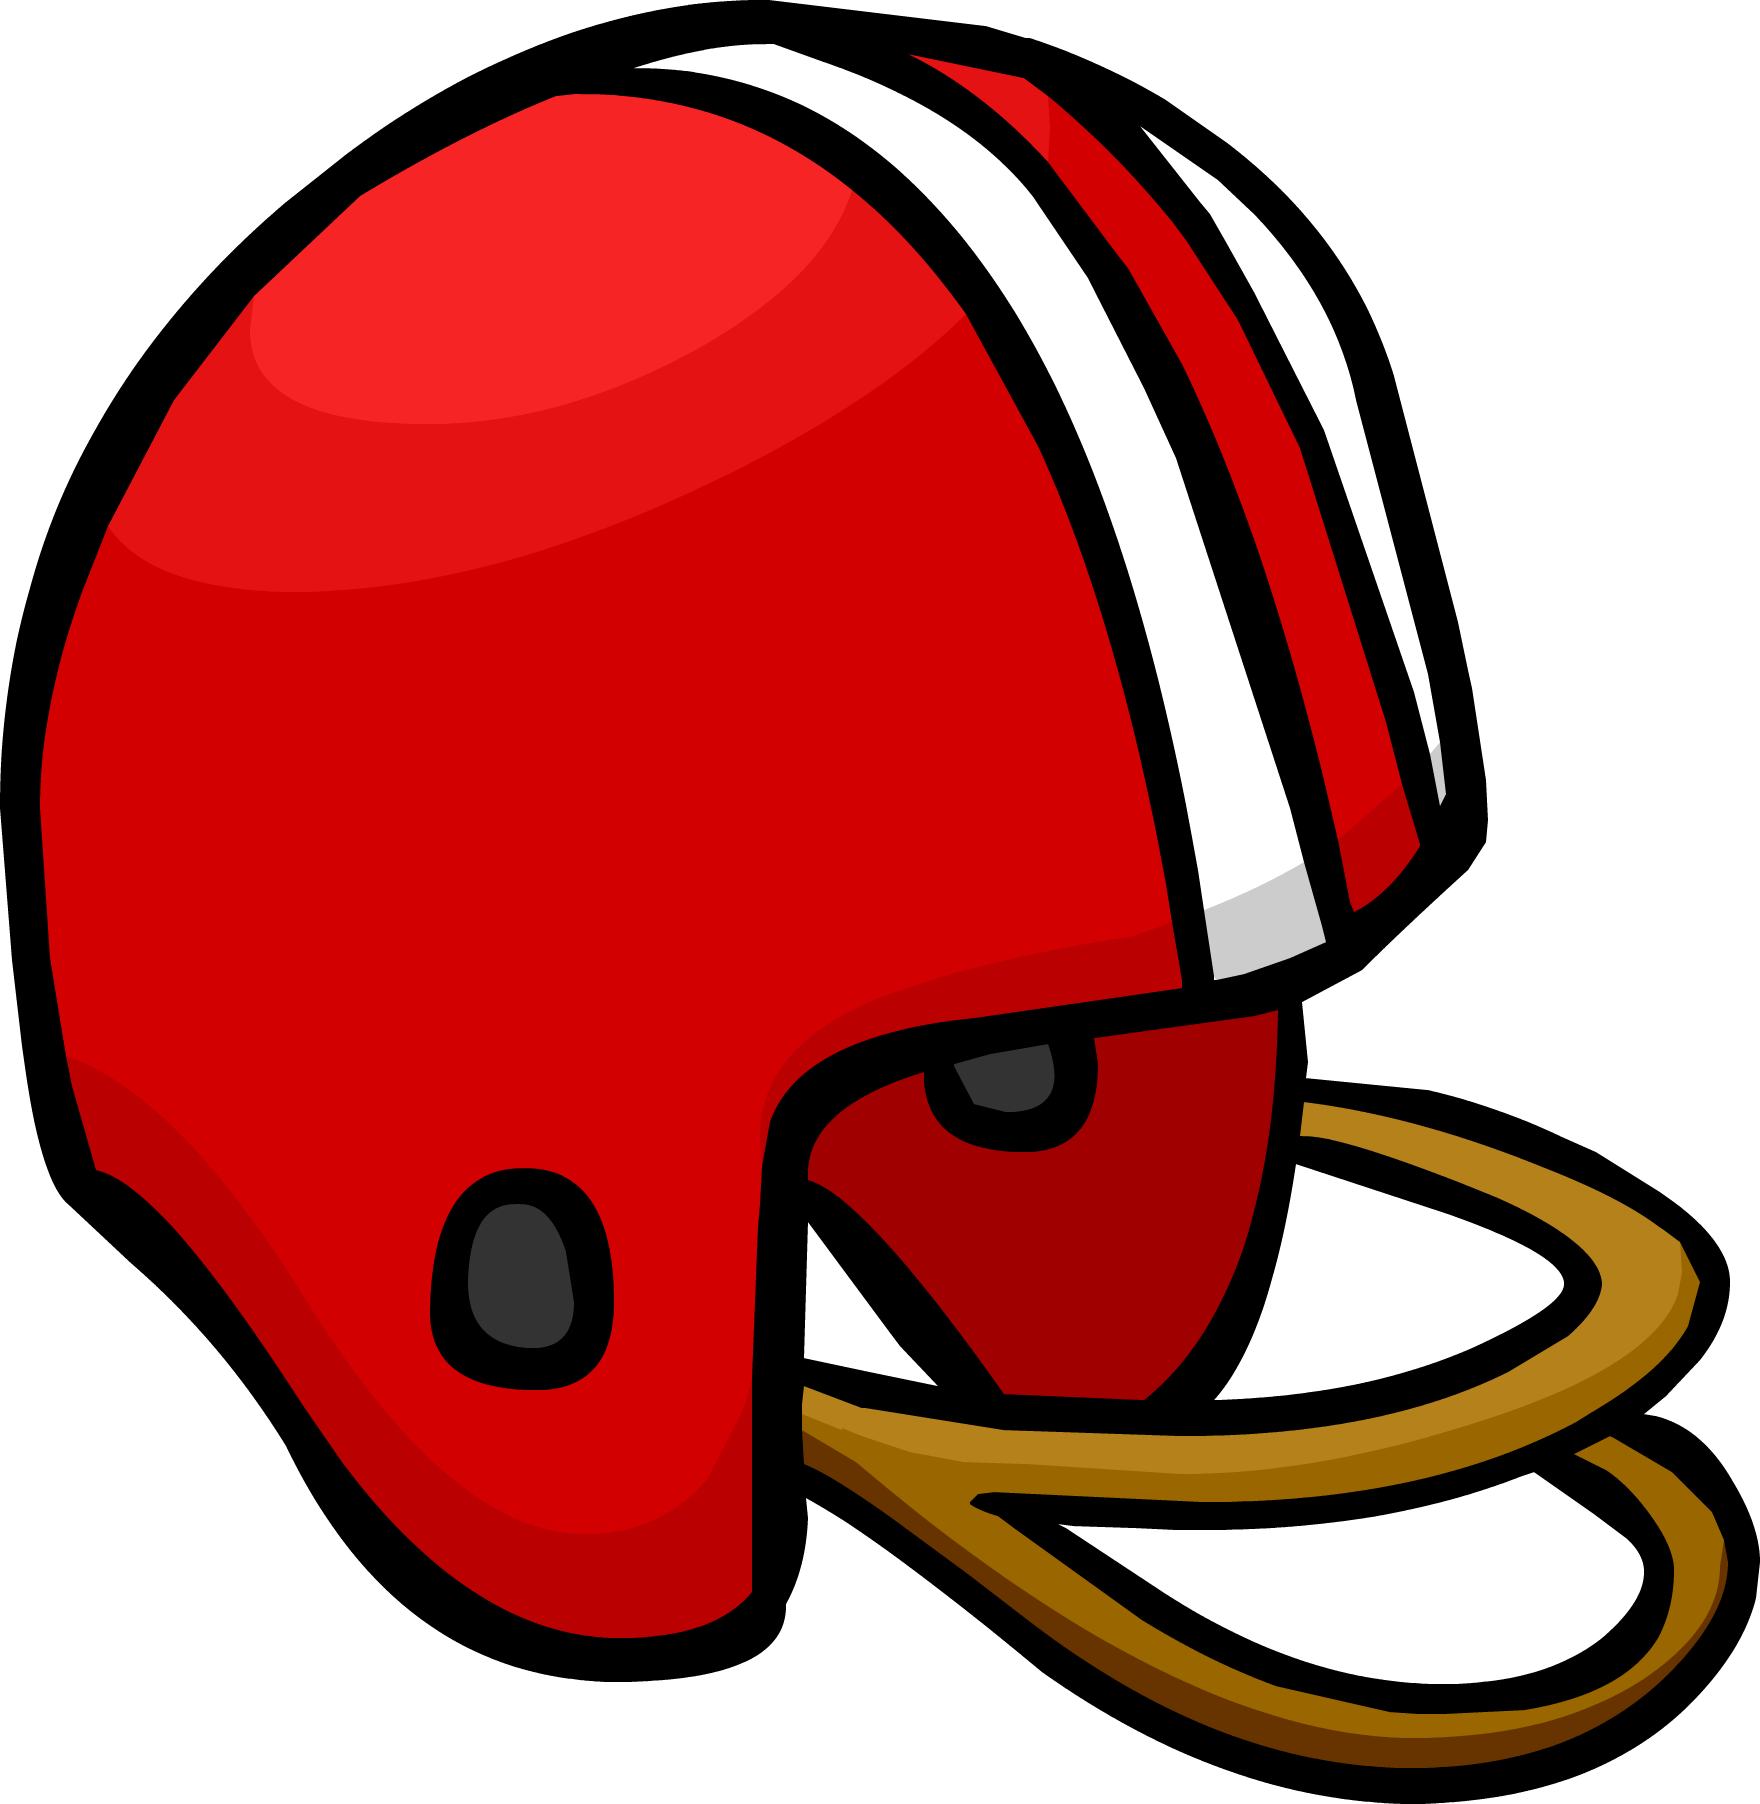 Red club penguin wiki. Football helmet clipart front